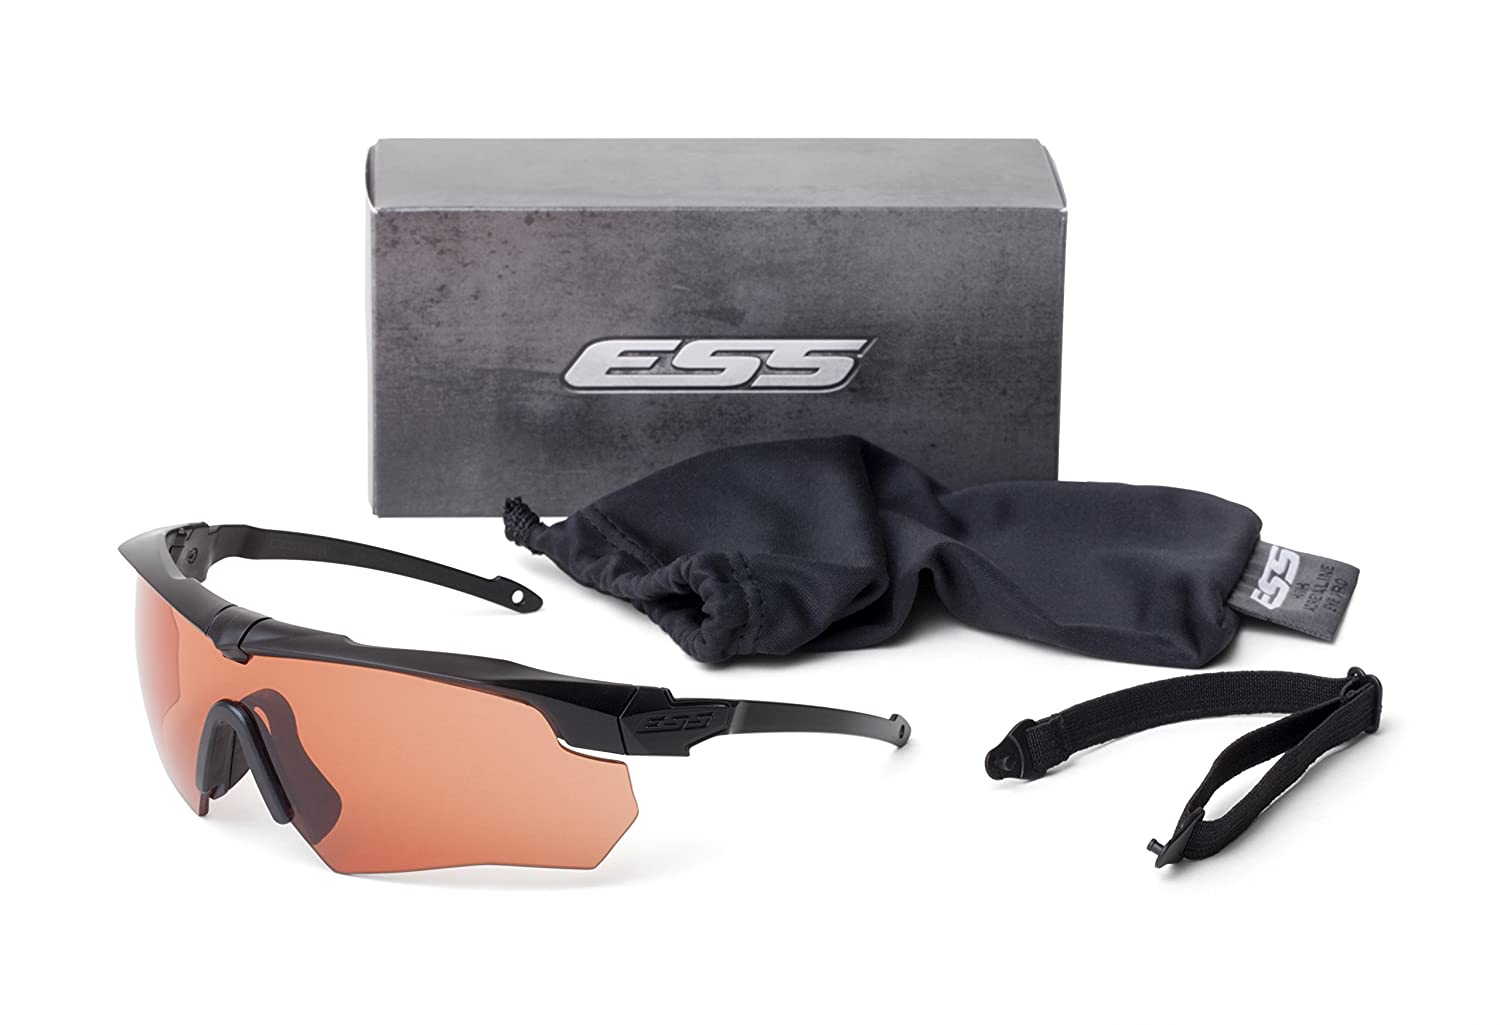 182b8107b41 ESS Eyewear Crossbow Suppressor One Kit Black  Amazon.co.uk  Sports    Outdoors